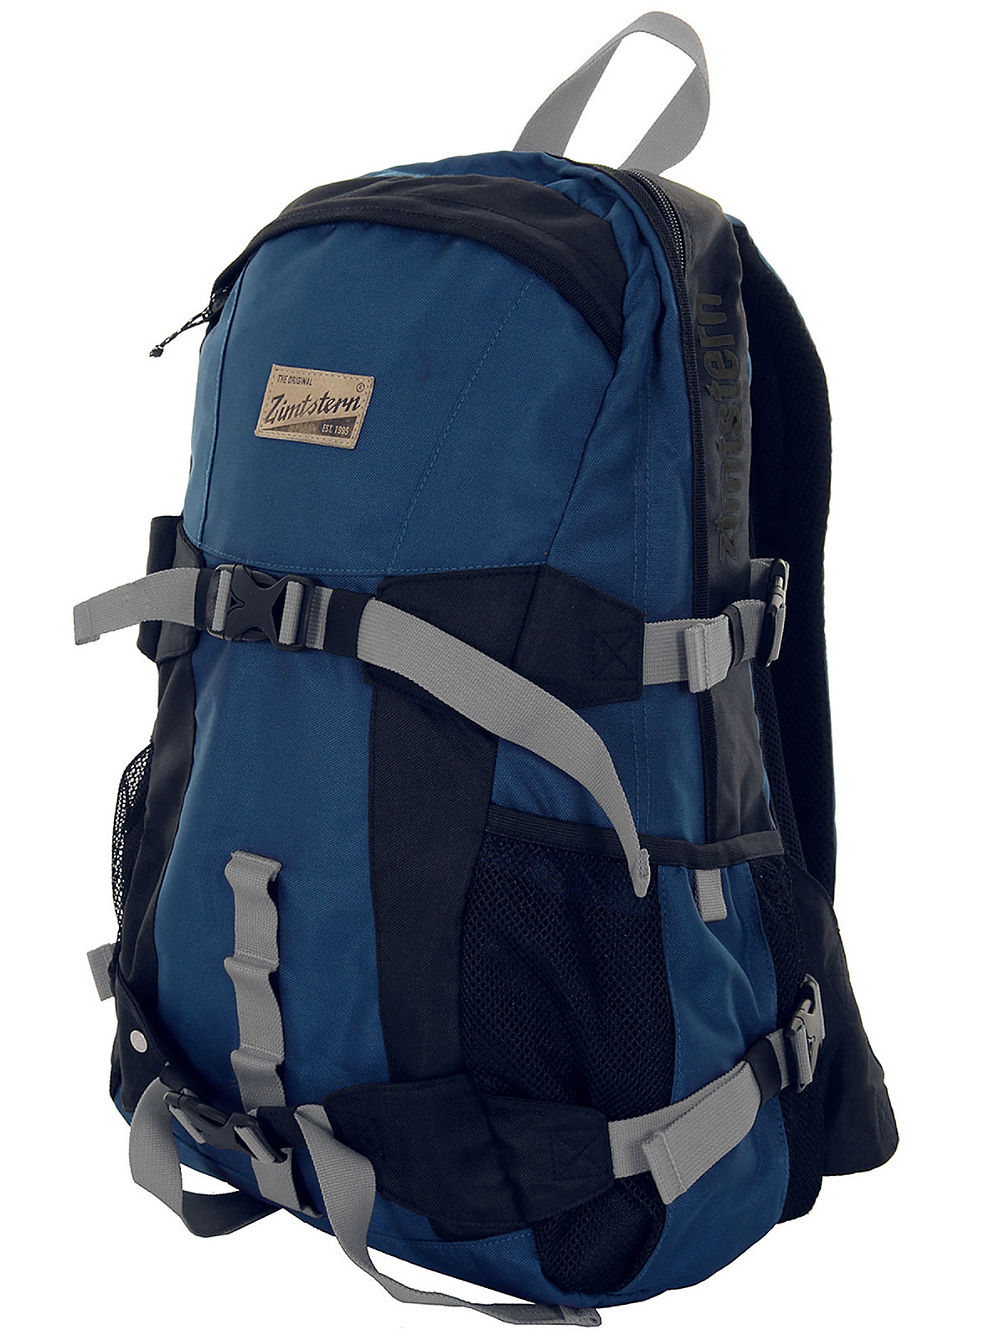 zimtstern walker rucksack online kaufen bei blue. Black Bedroom Furniture Sets. Home Design Ideas